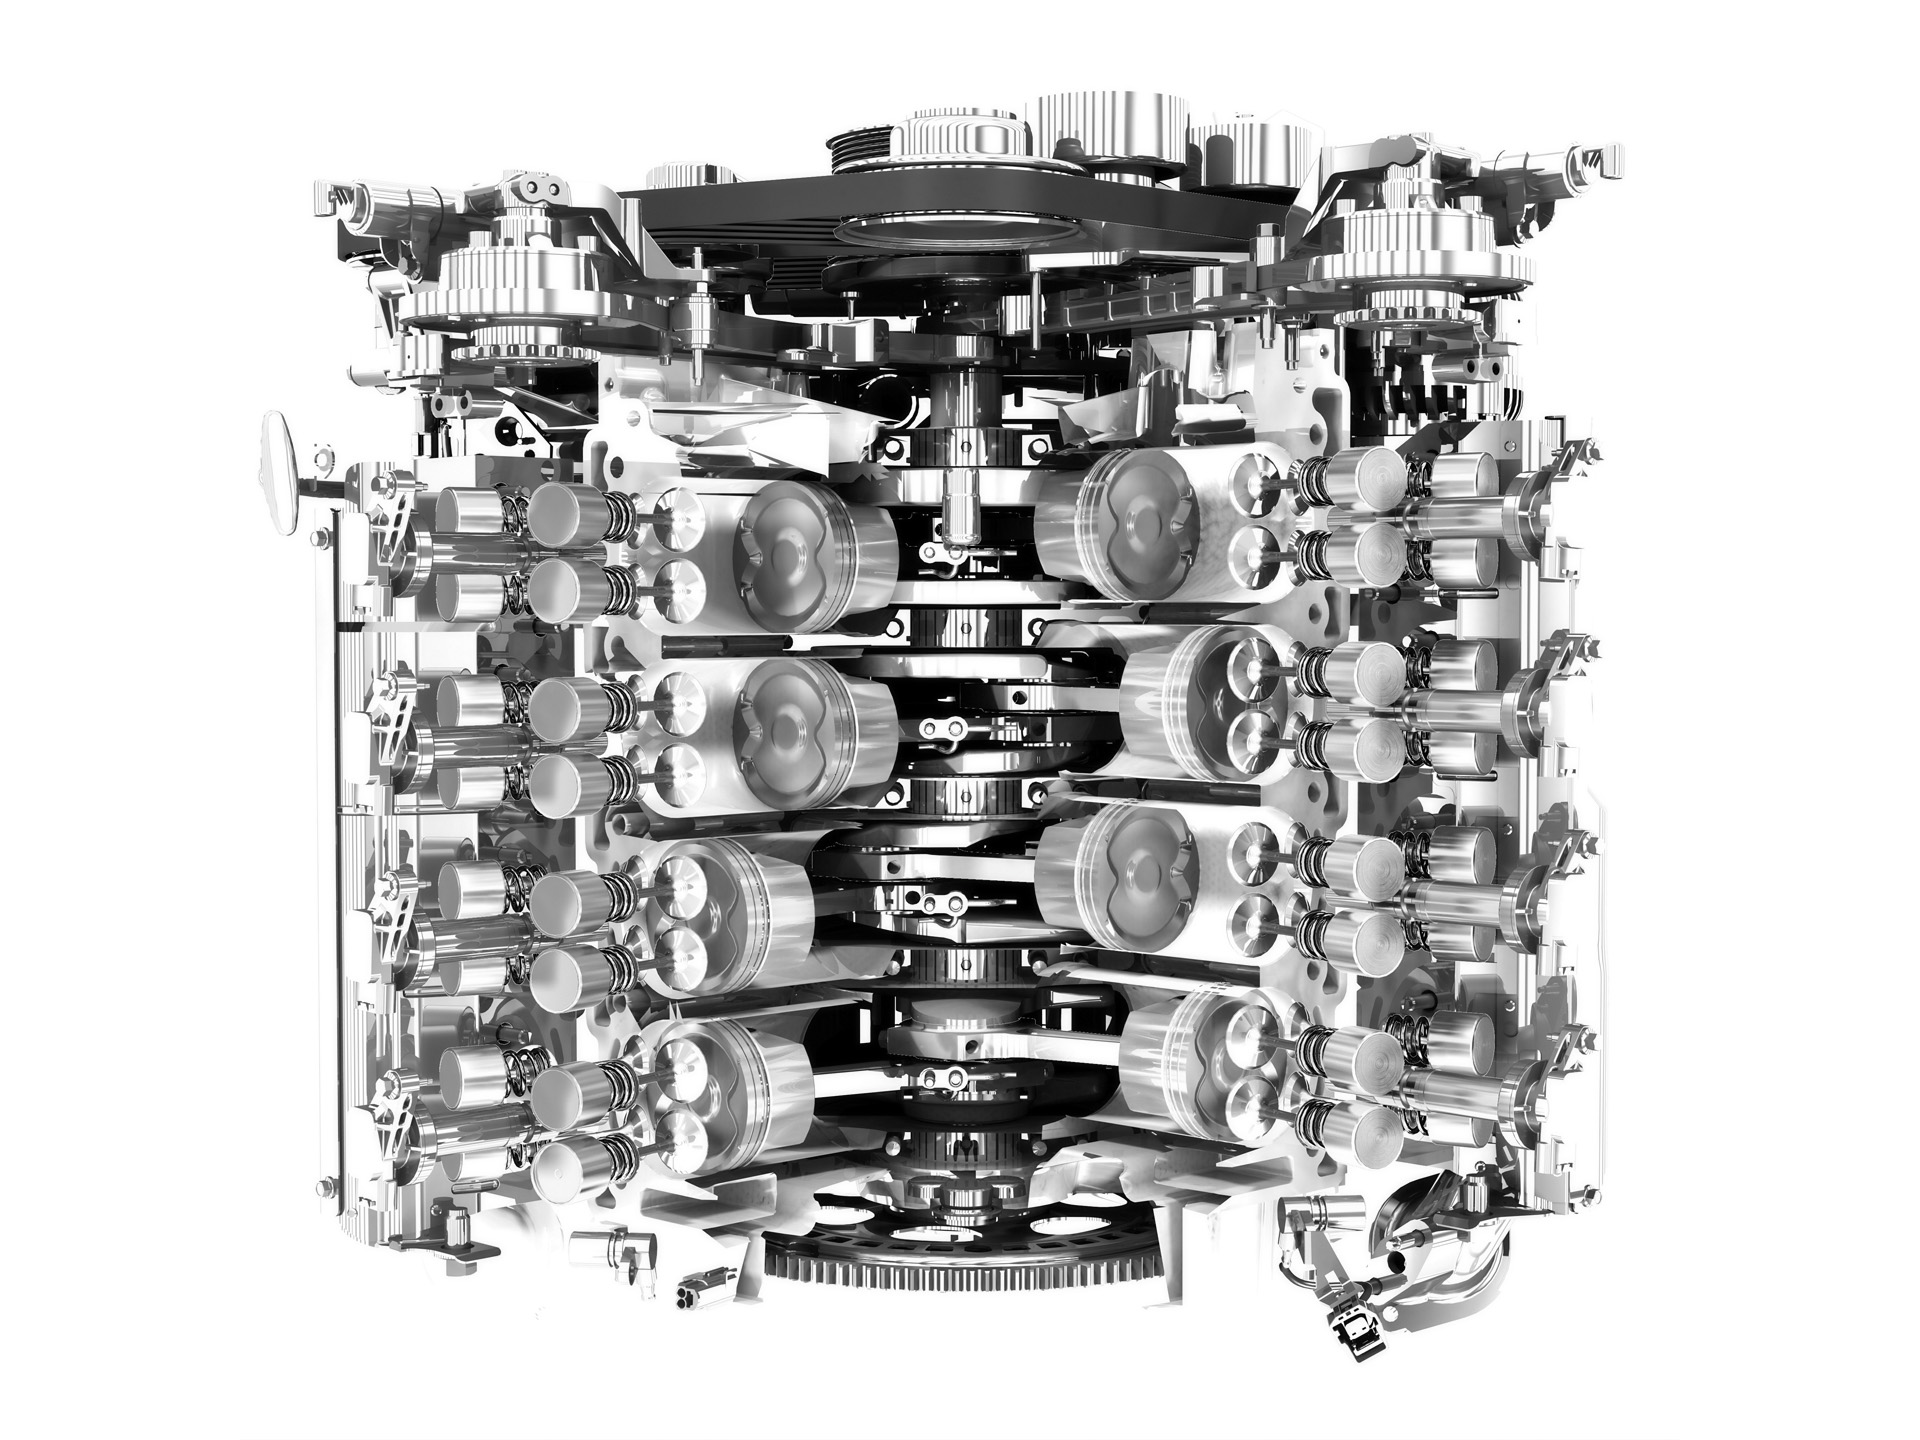 Sample C1508 Engine